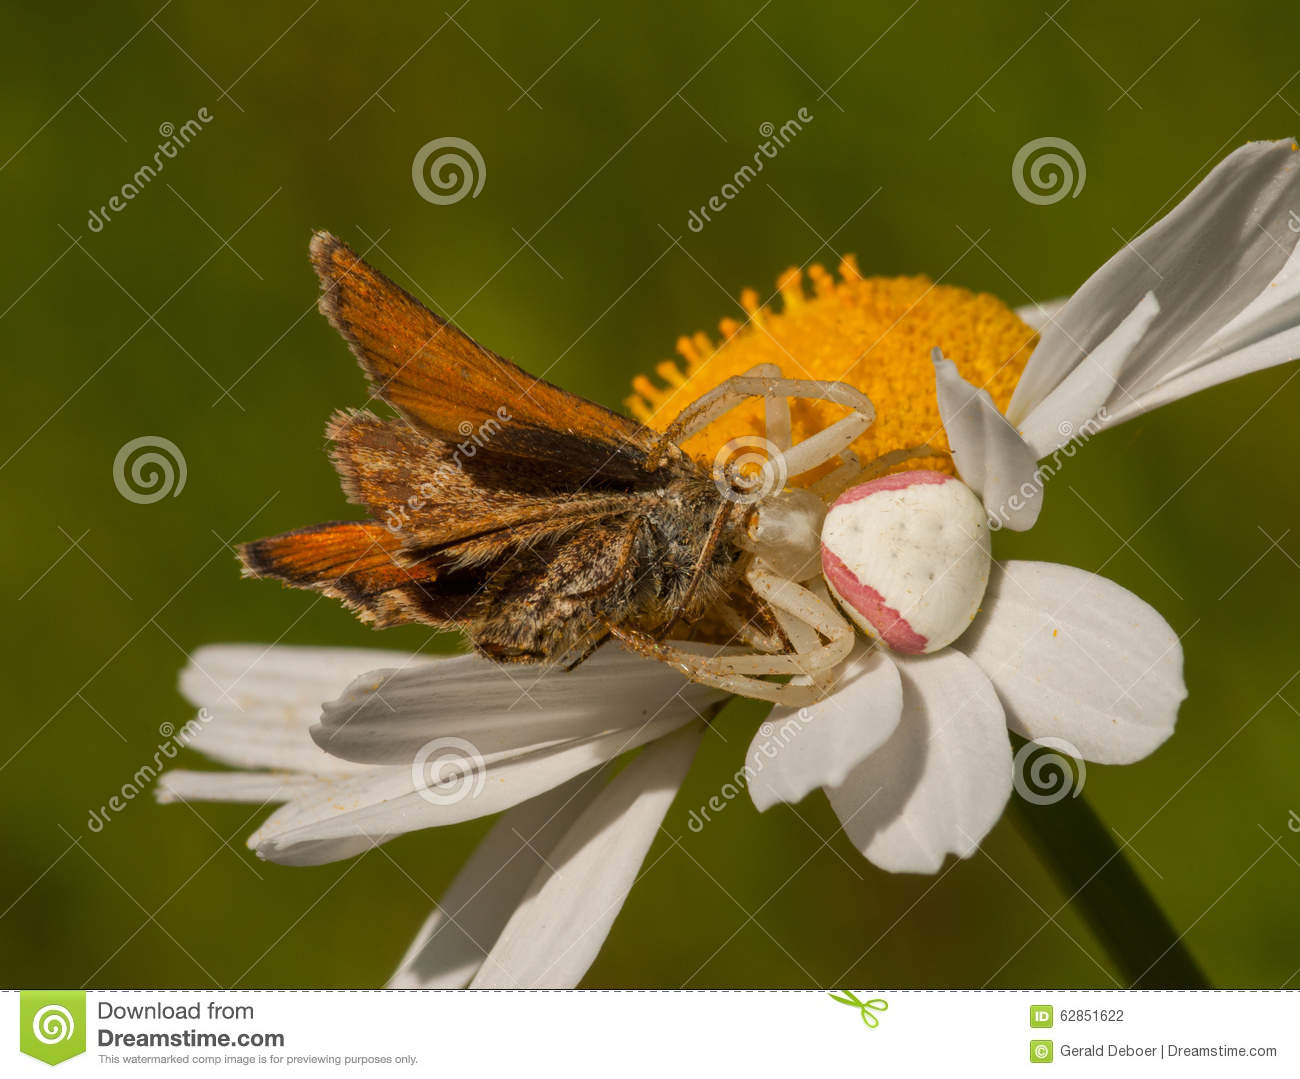 Crab Spider Eating Skipper stock photo. Image of environment - 62851622